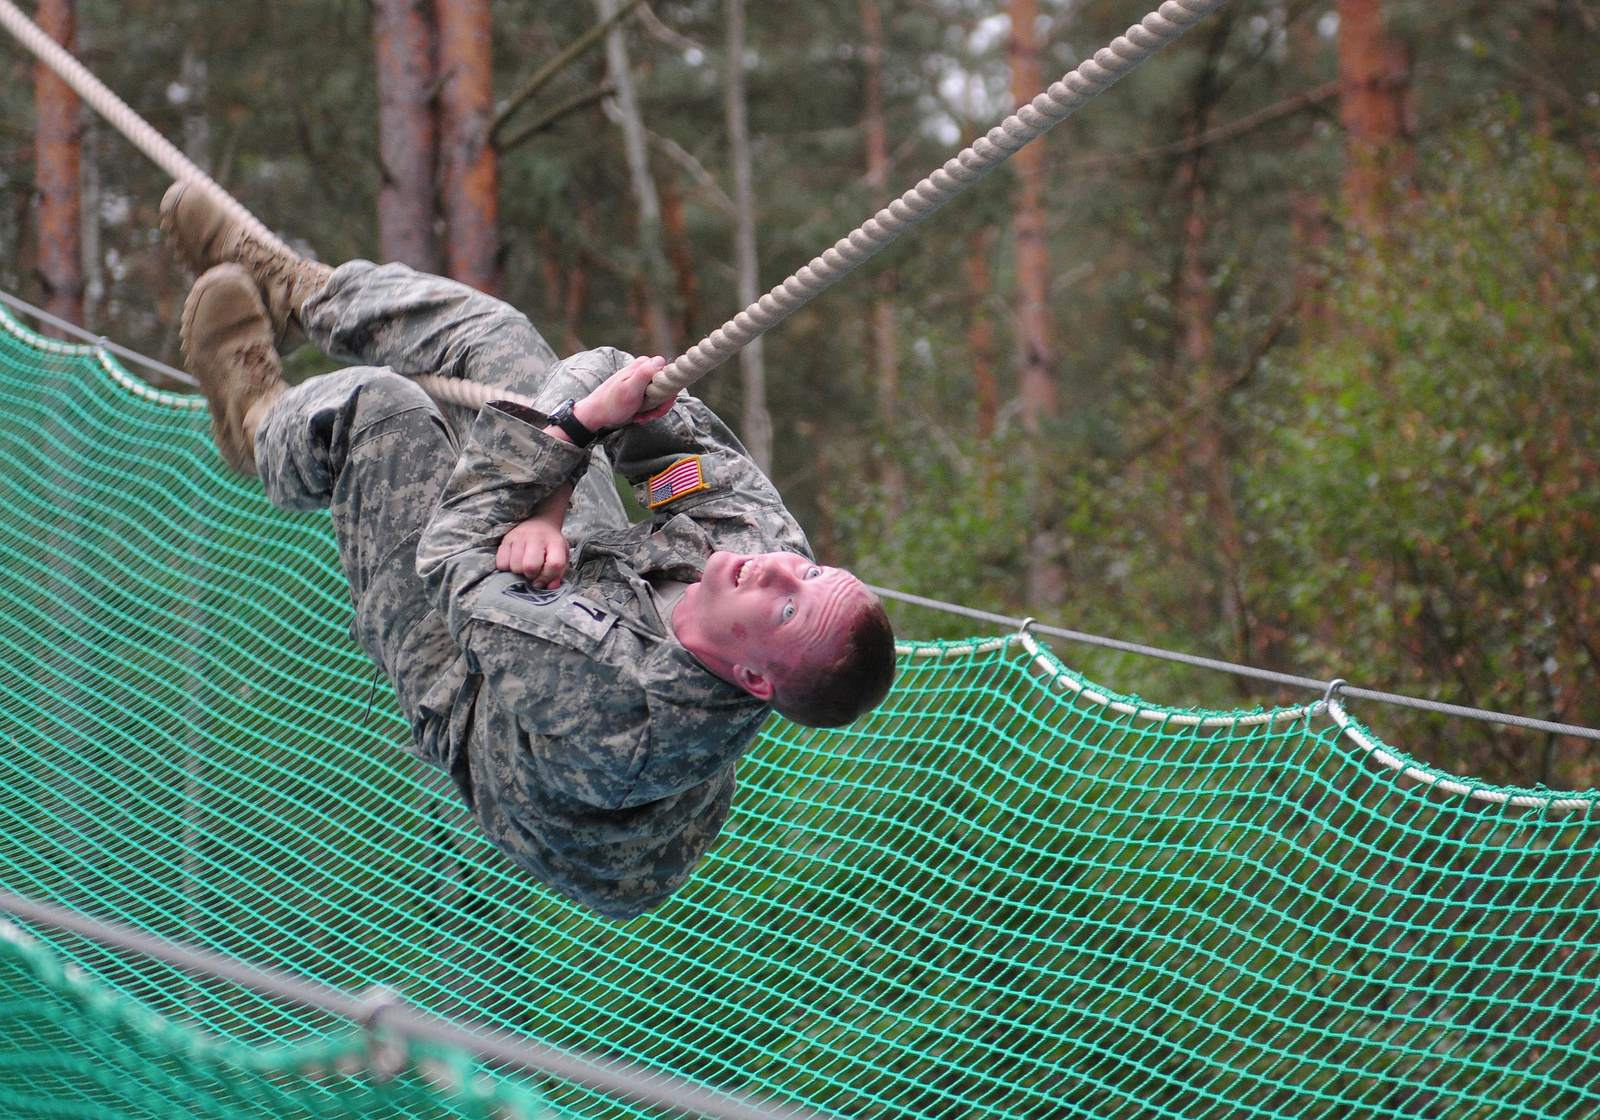 us army europe2 The U.S. Army Best Warrior Competition in Europe